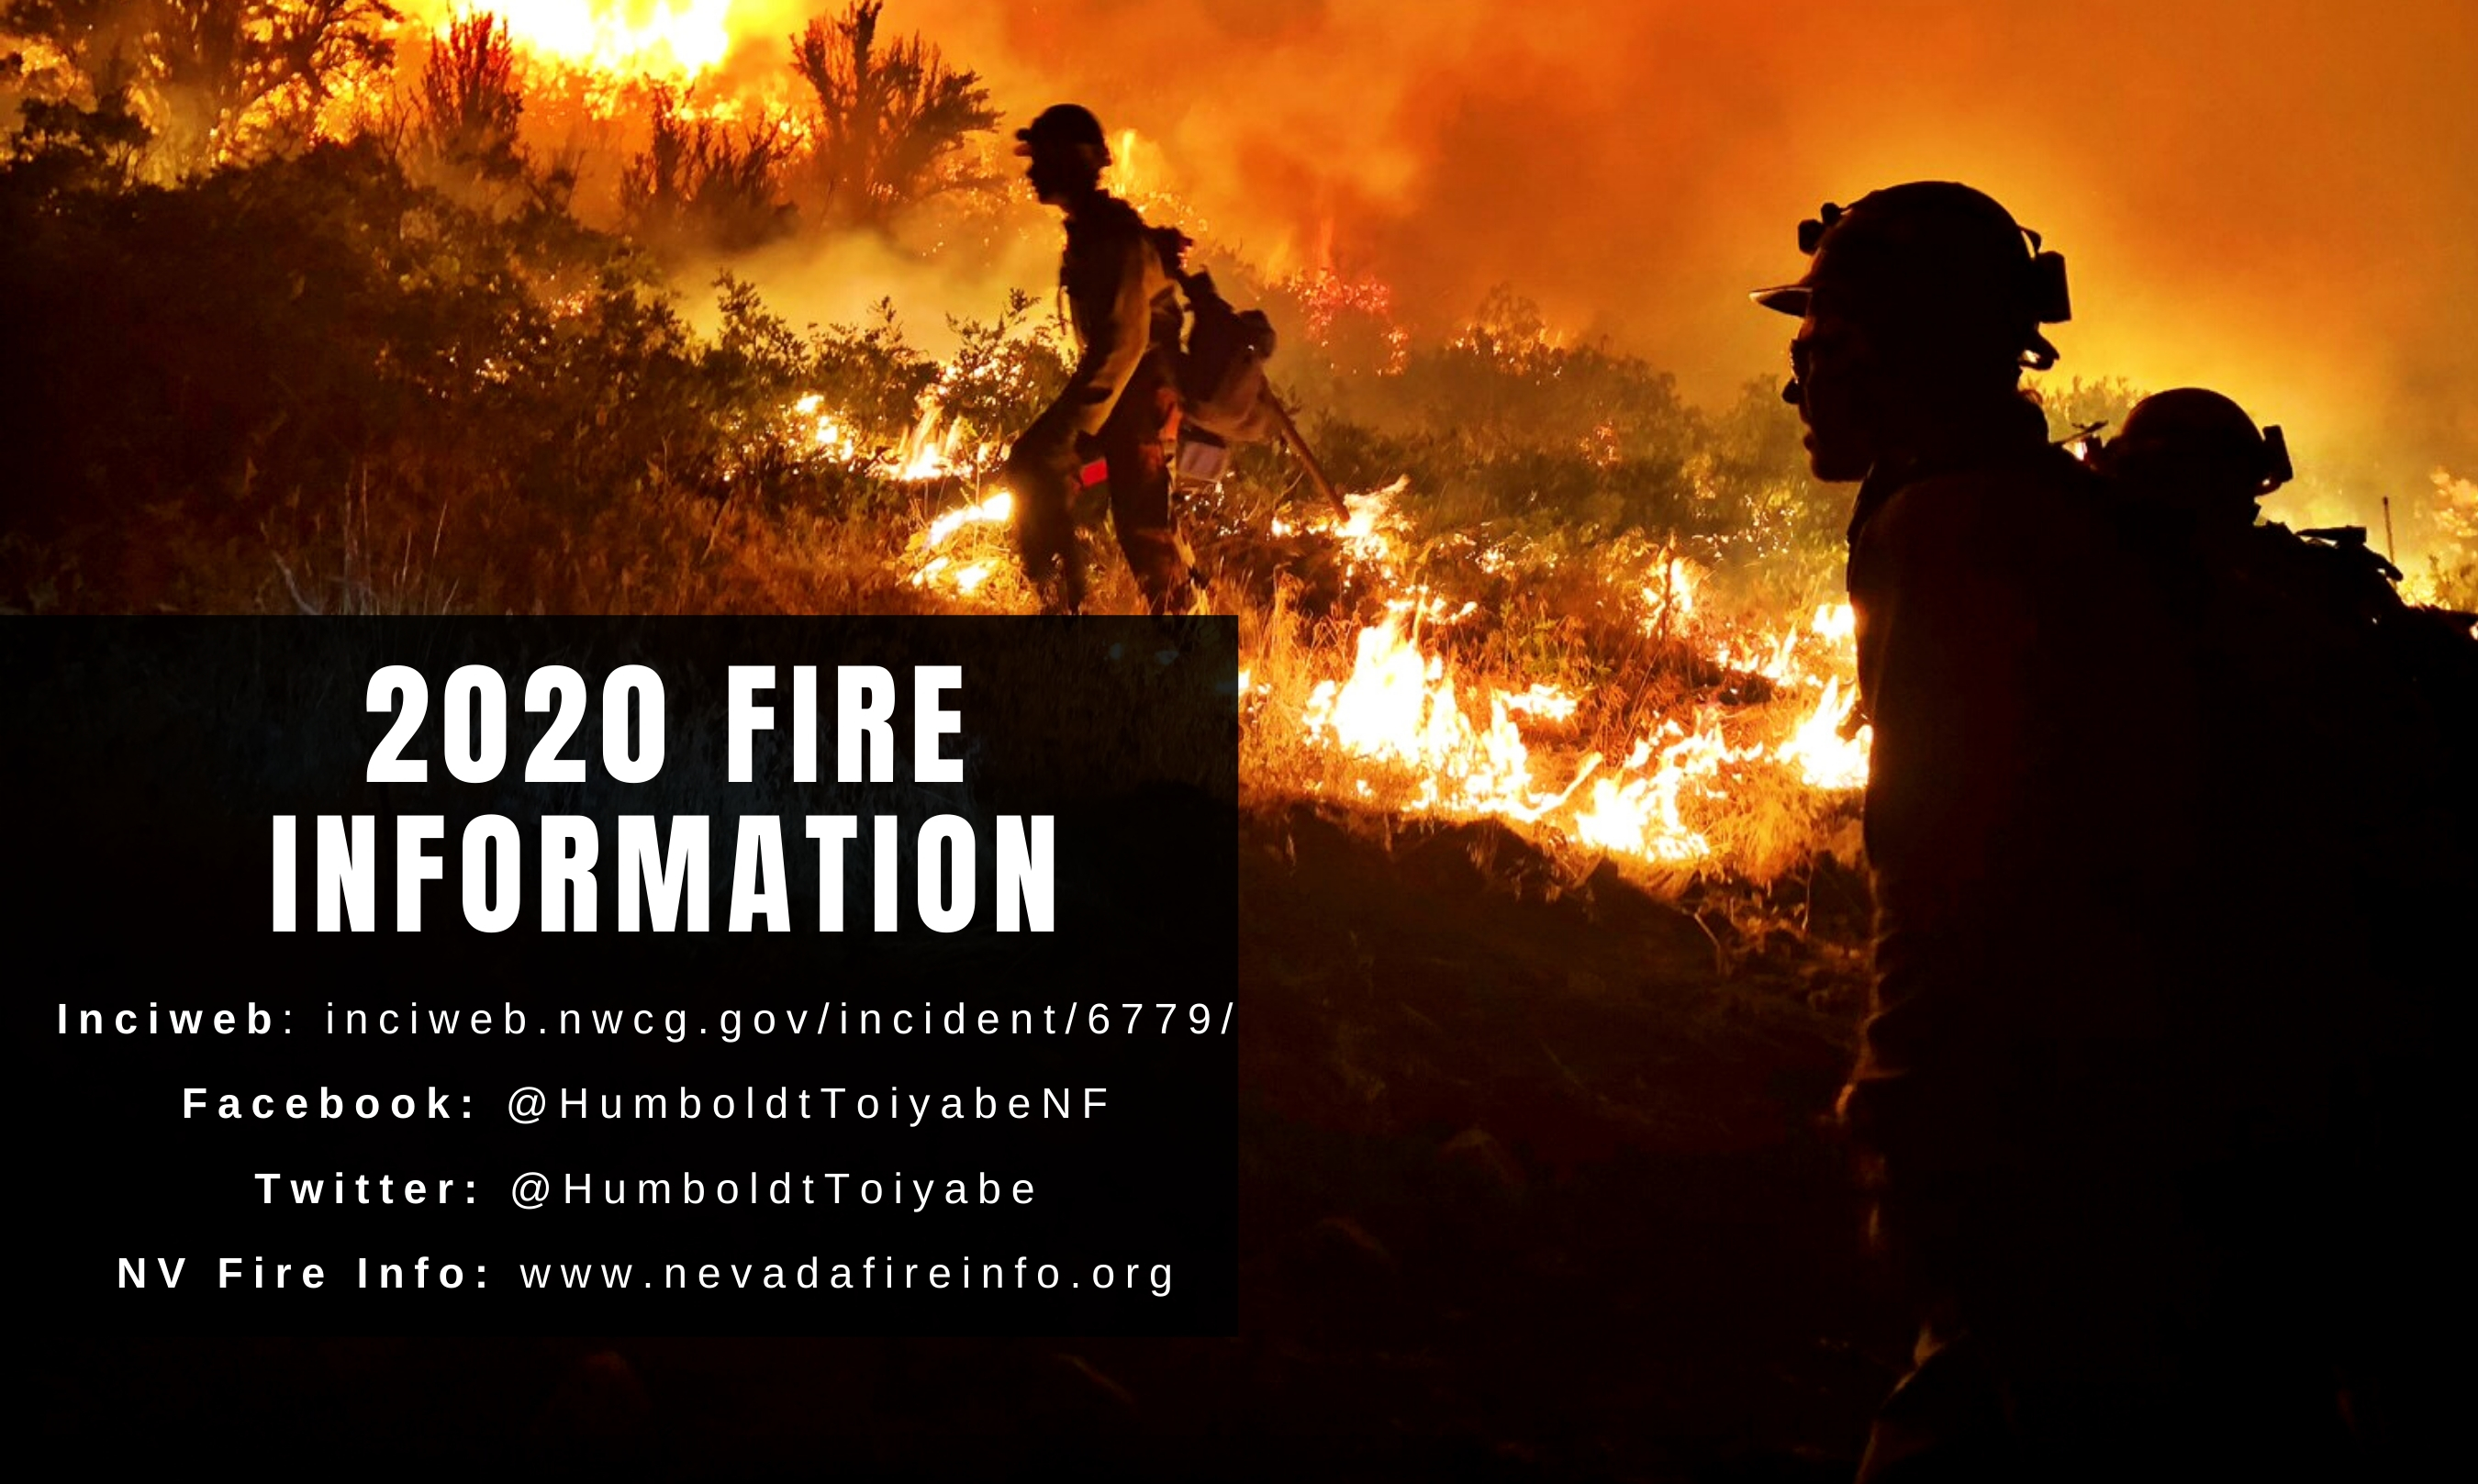 2020 Fire Information Resources